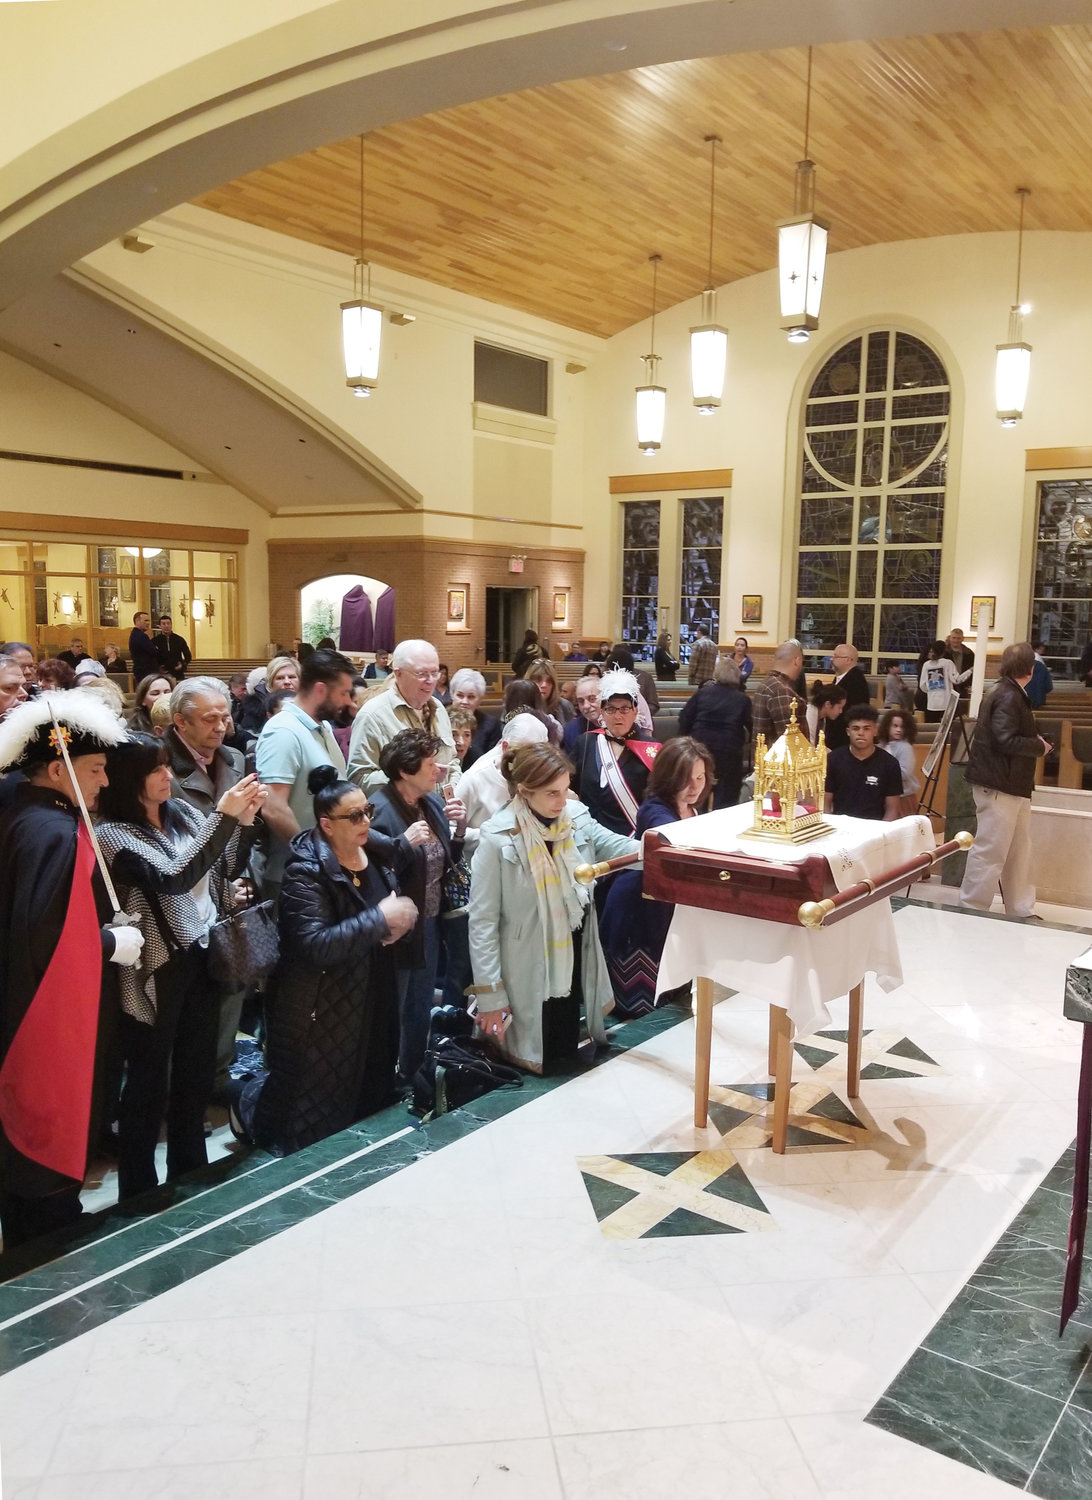 People pray before and venerate the incorrupt heart relic of St. John Vianney during its visit to Our Lady Star of the Sea Church on Staten Island following the 7 p.m. Mass April 7. The relic remained at the church overnight through early morning April 8.